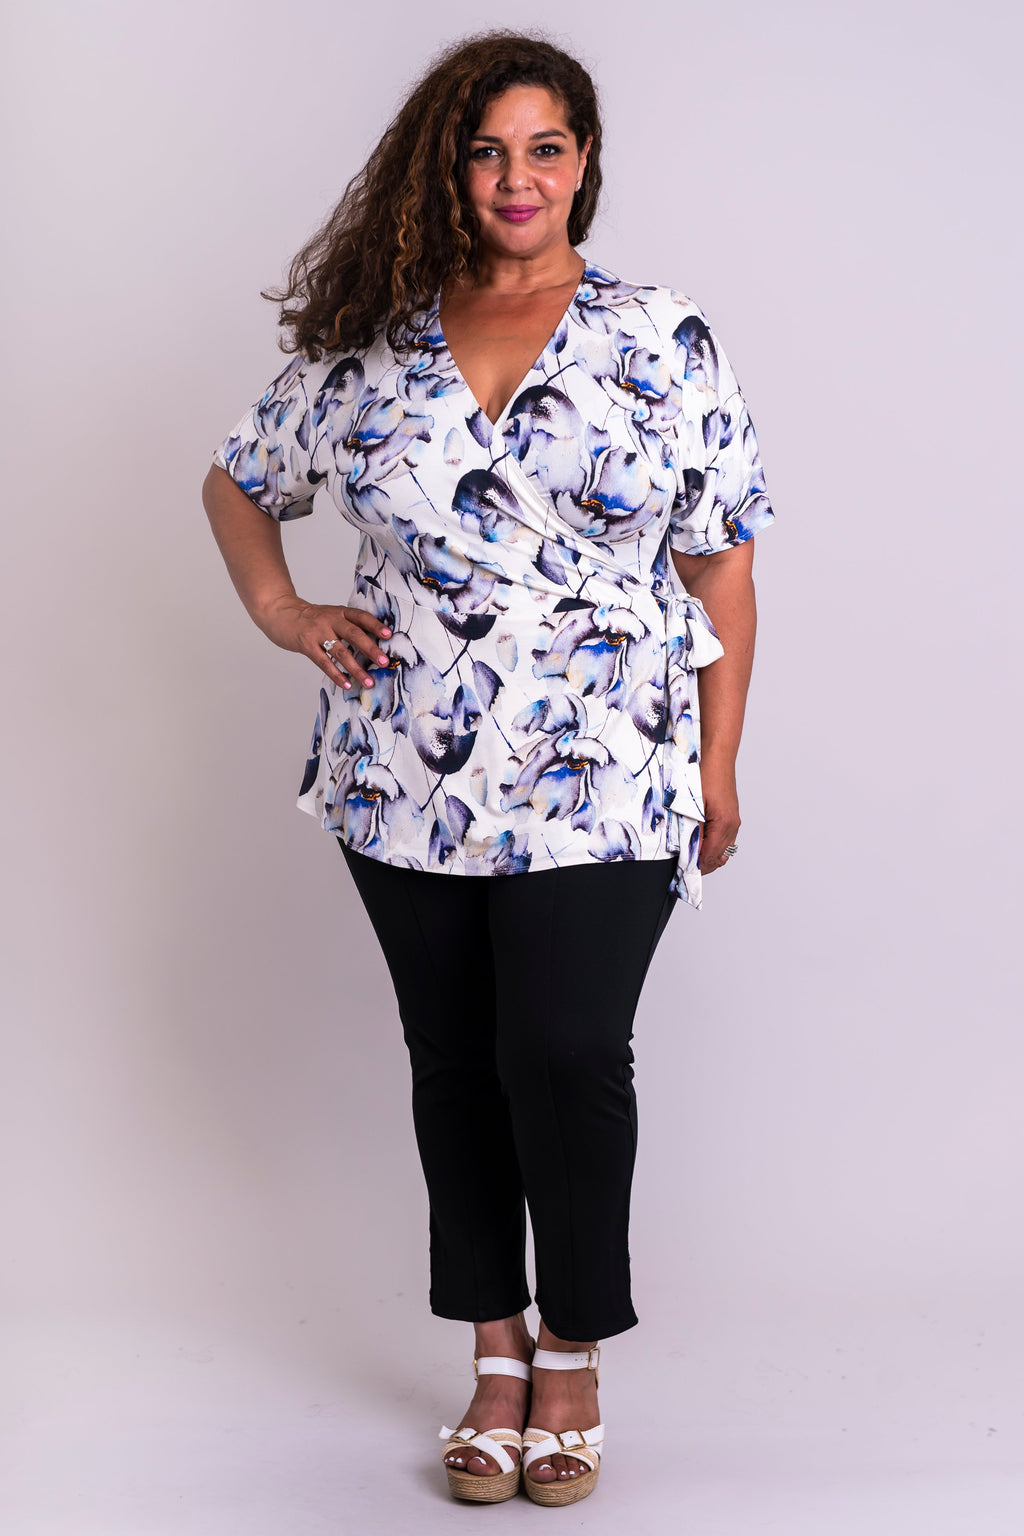 Pearl Top, Secret Garden, Bamboo - Blue Sky Clothing Co